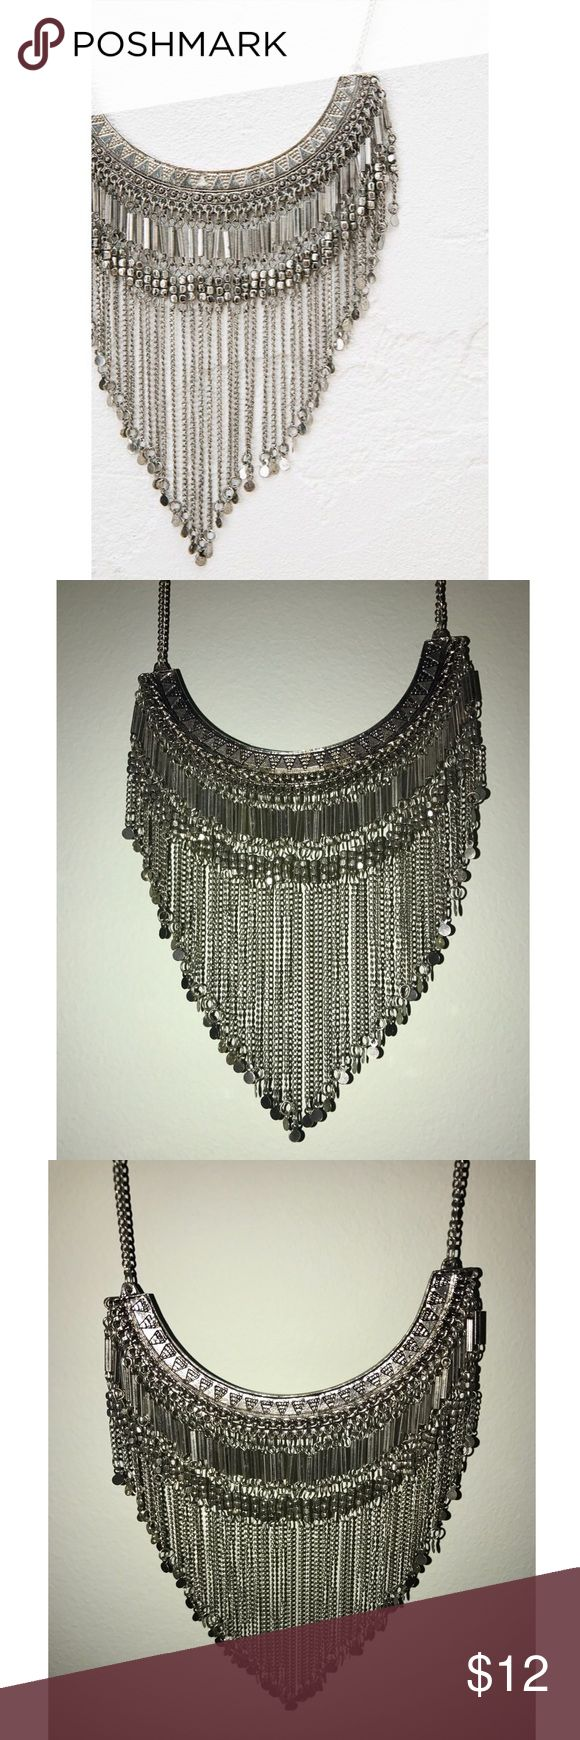 Bershka Statement necklace Cool bohemian/ Aztec style necklace from Bershka, the women's fashion store hailing from Spain. Dark silver and intricate details on the dangling chains. Very unique find. Bershka Jewelry Necklaces